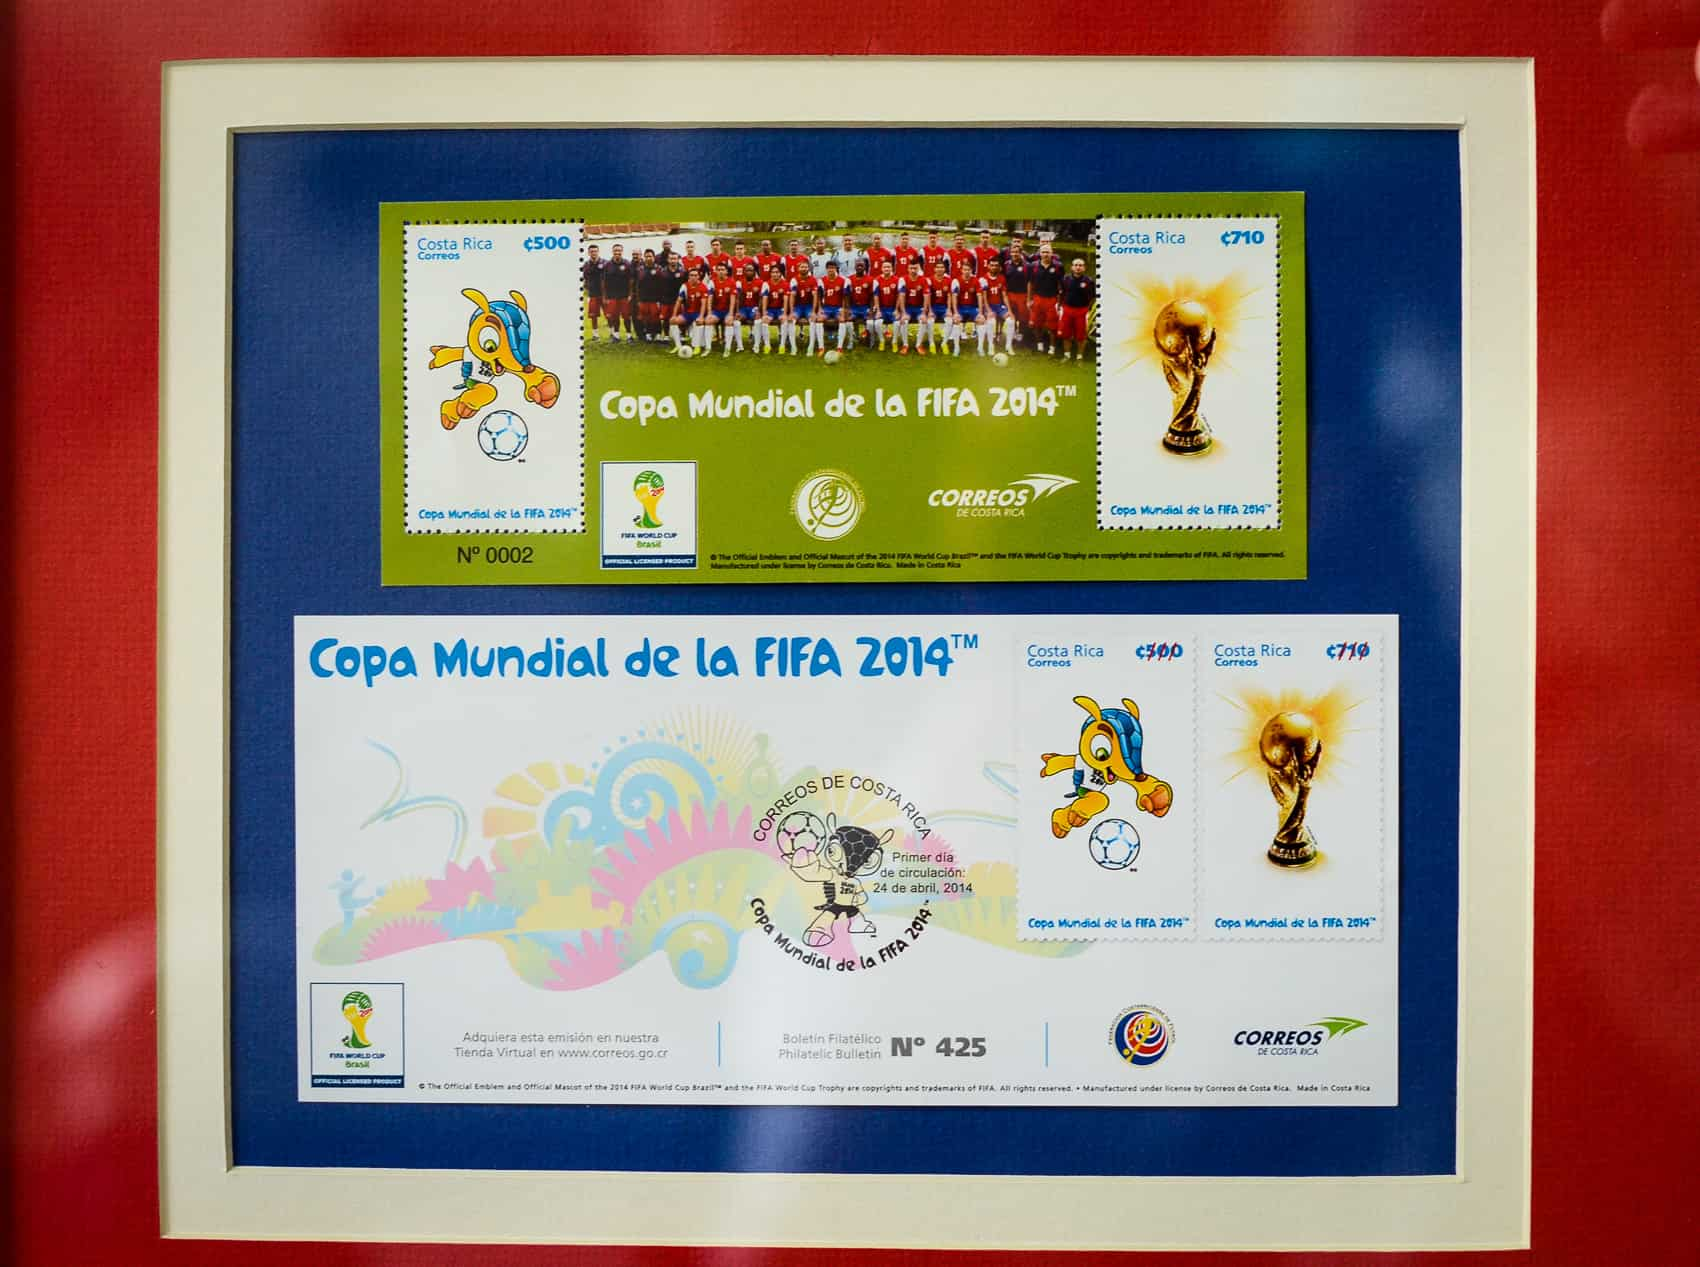 Brazil World Cup 2014 special edition stamps